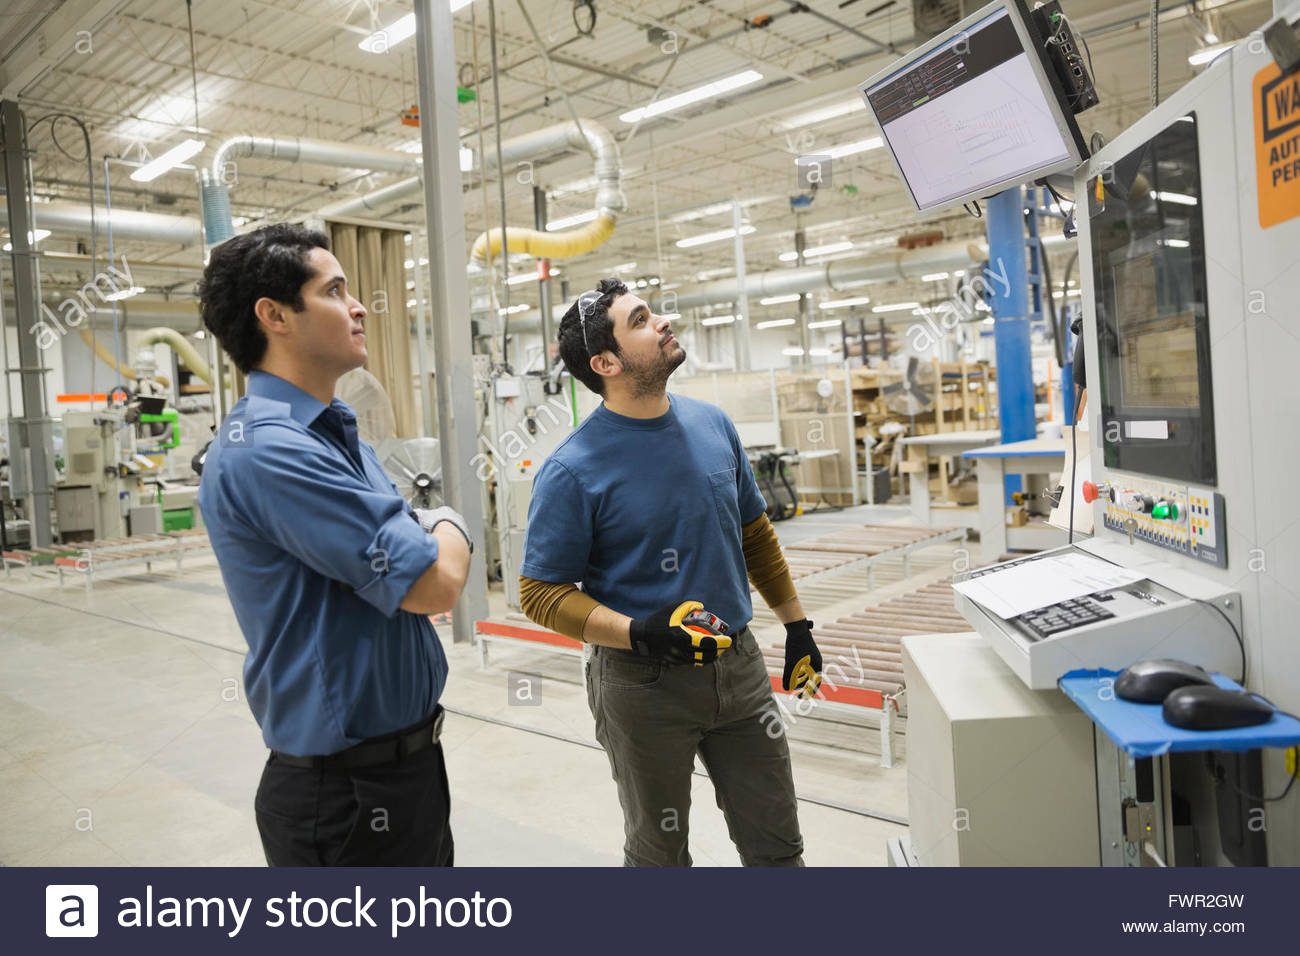 Manual workers looking at screen in warehouse - Stock Image